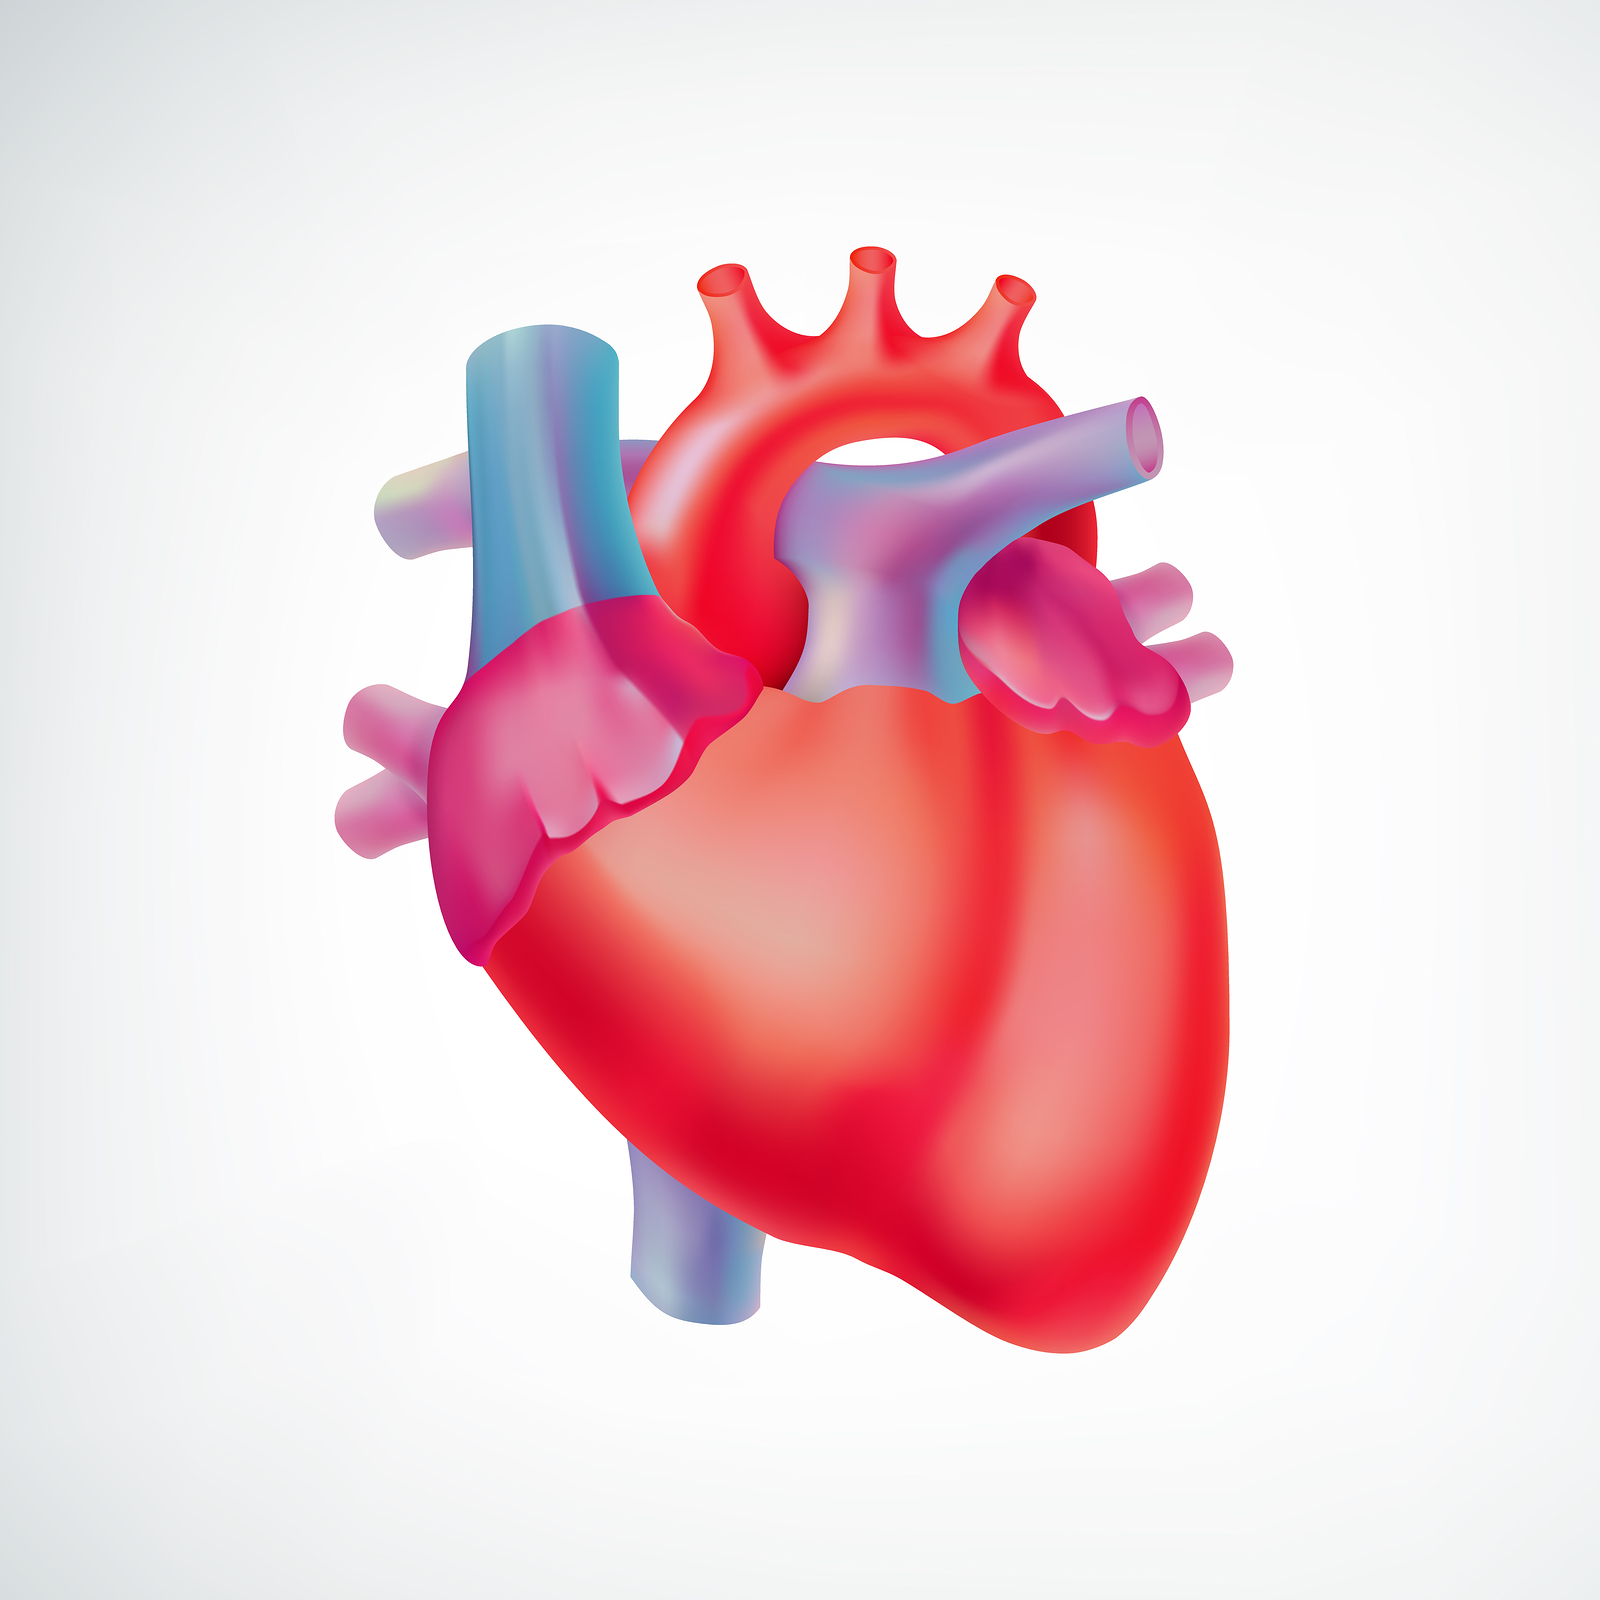 Medical light organ anatomic concept with colorful human heart on white background - Forest Medical Device Testing